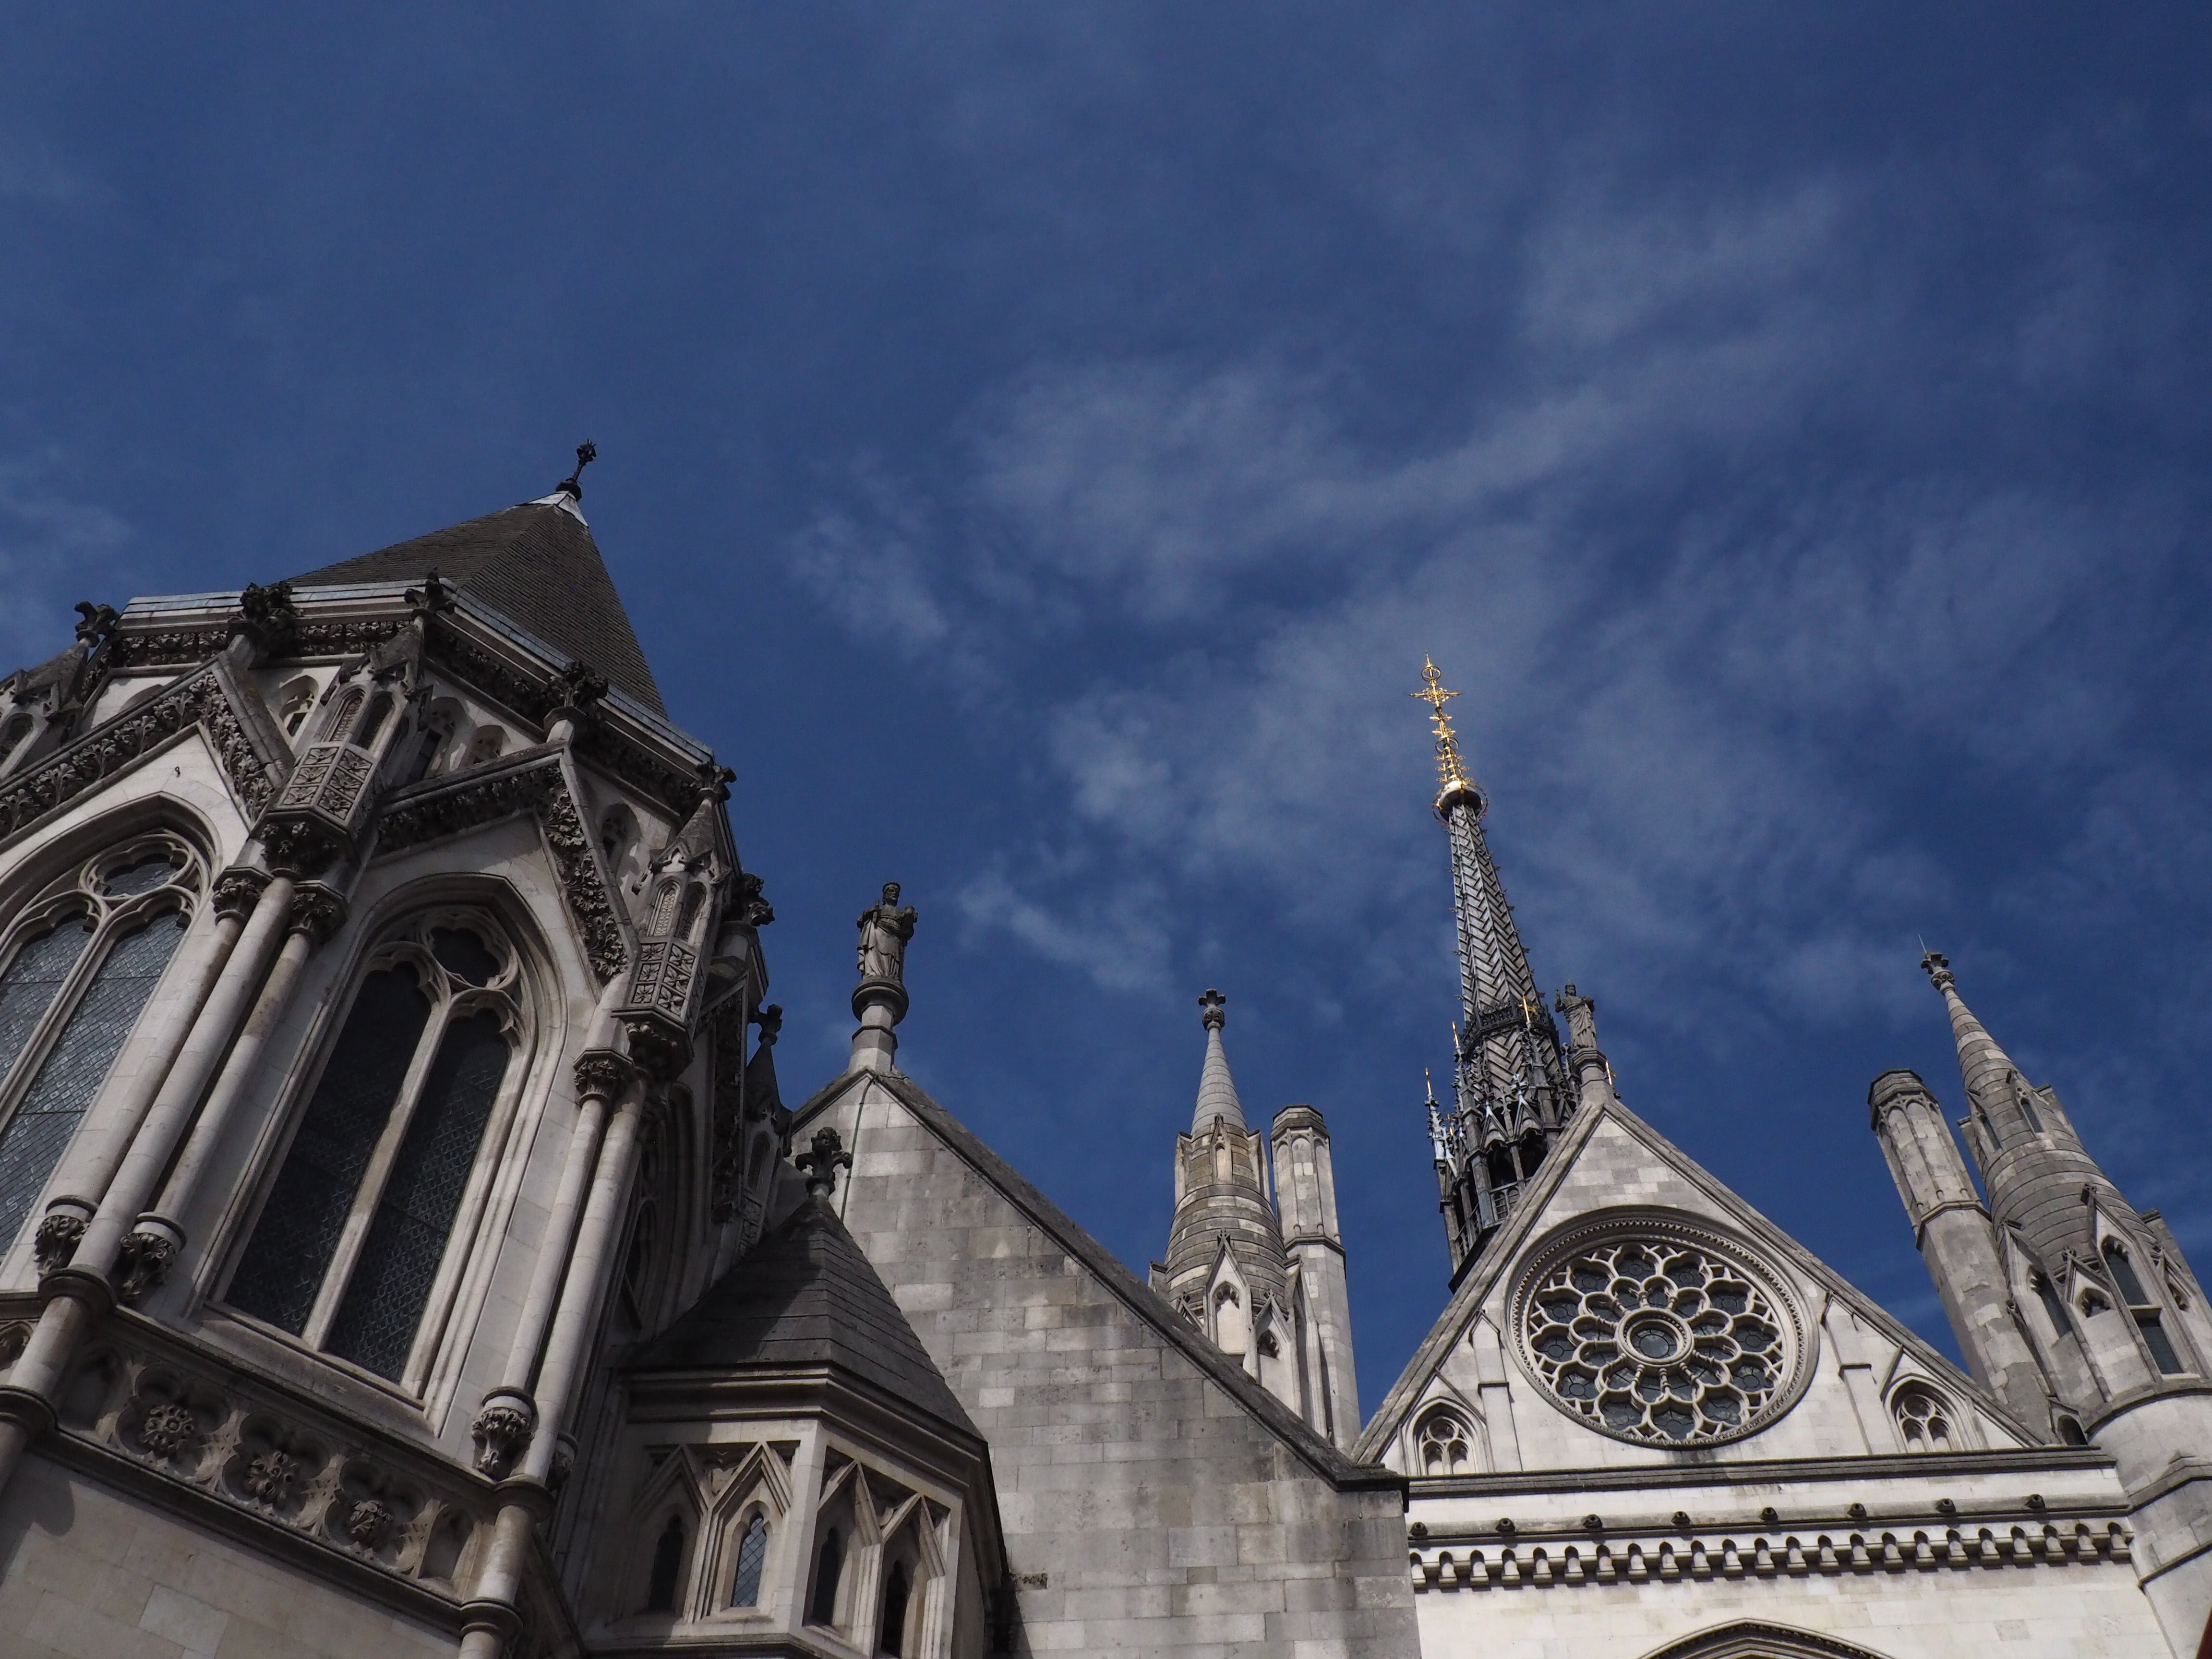 Free stock photo of architectural design, architecture, blue sky, cathedral